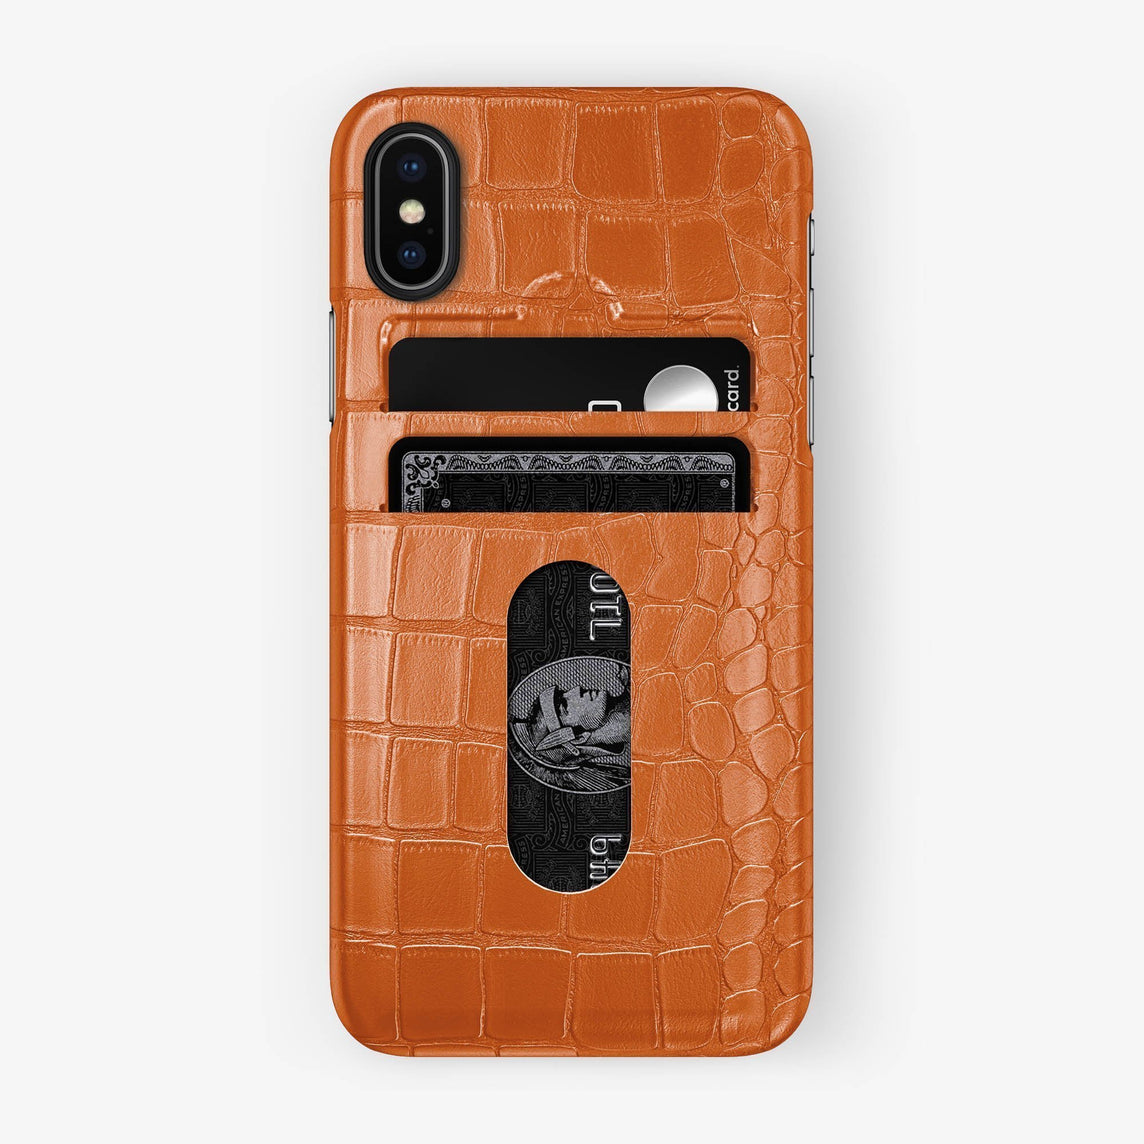 Alligator Card Holder Case iPhone Xs Max | Orange - Black - Hadoro